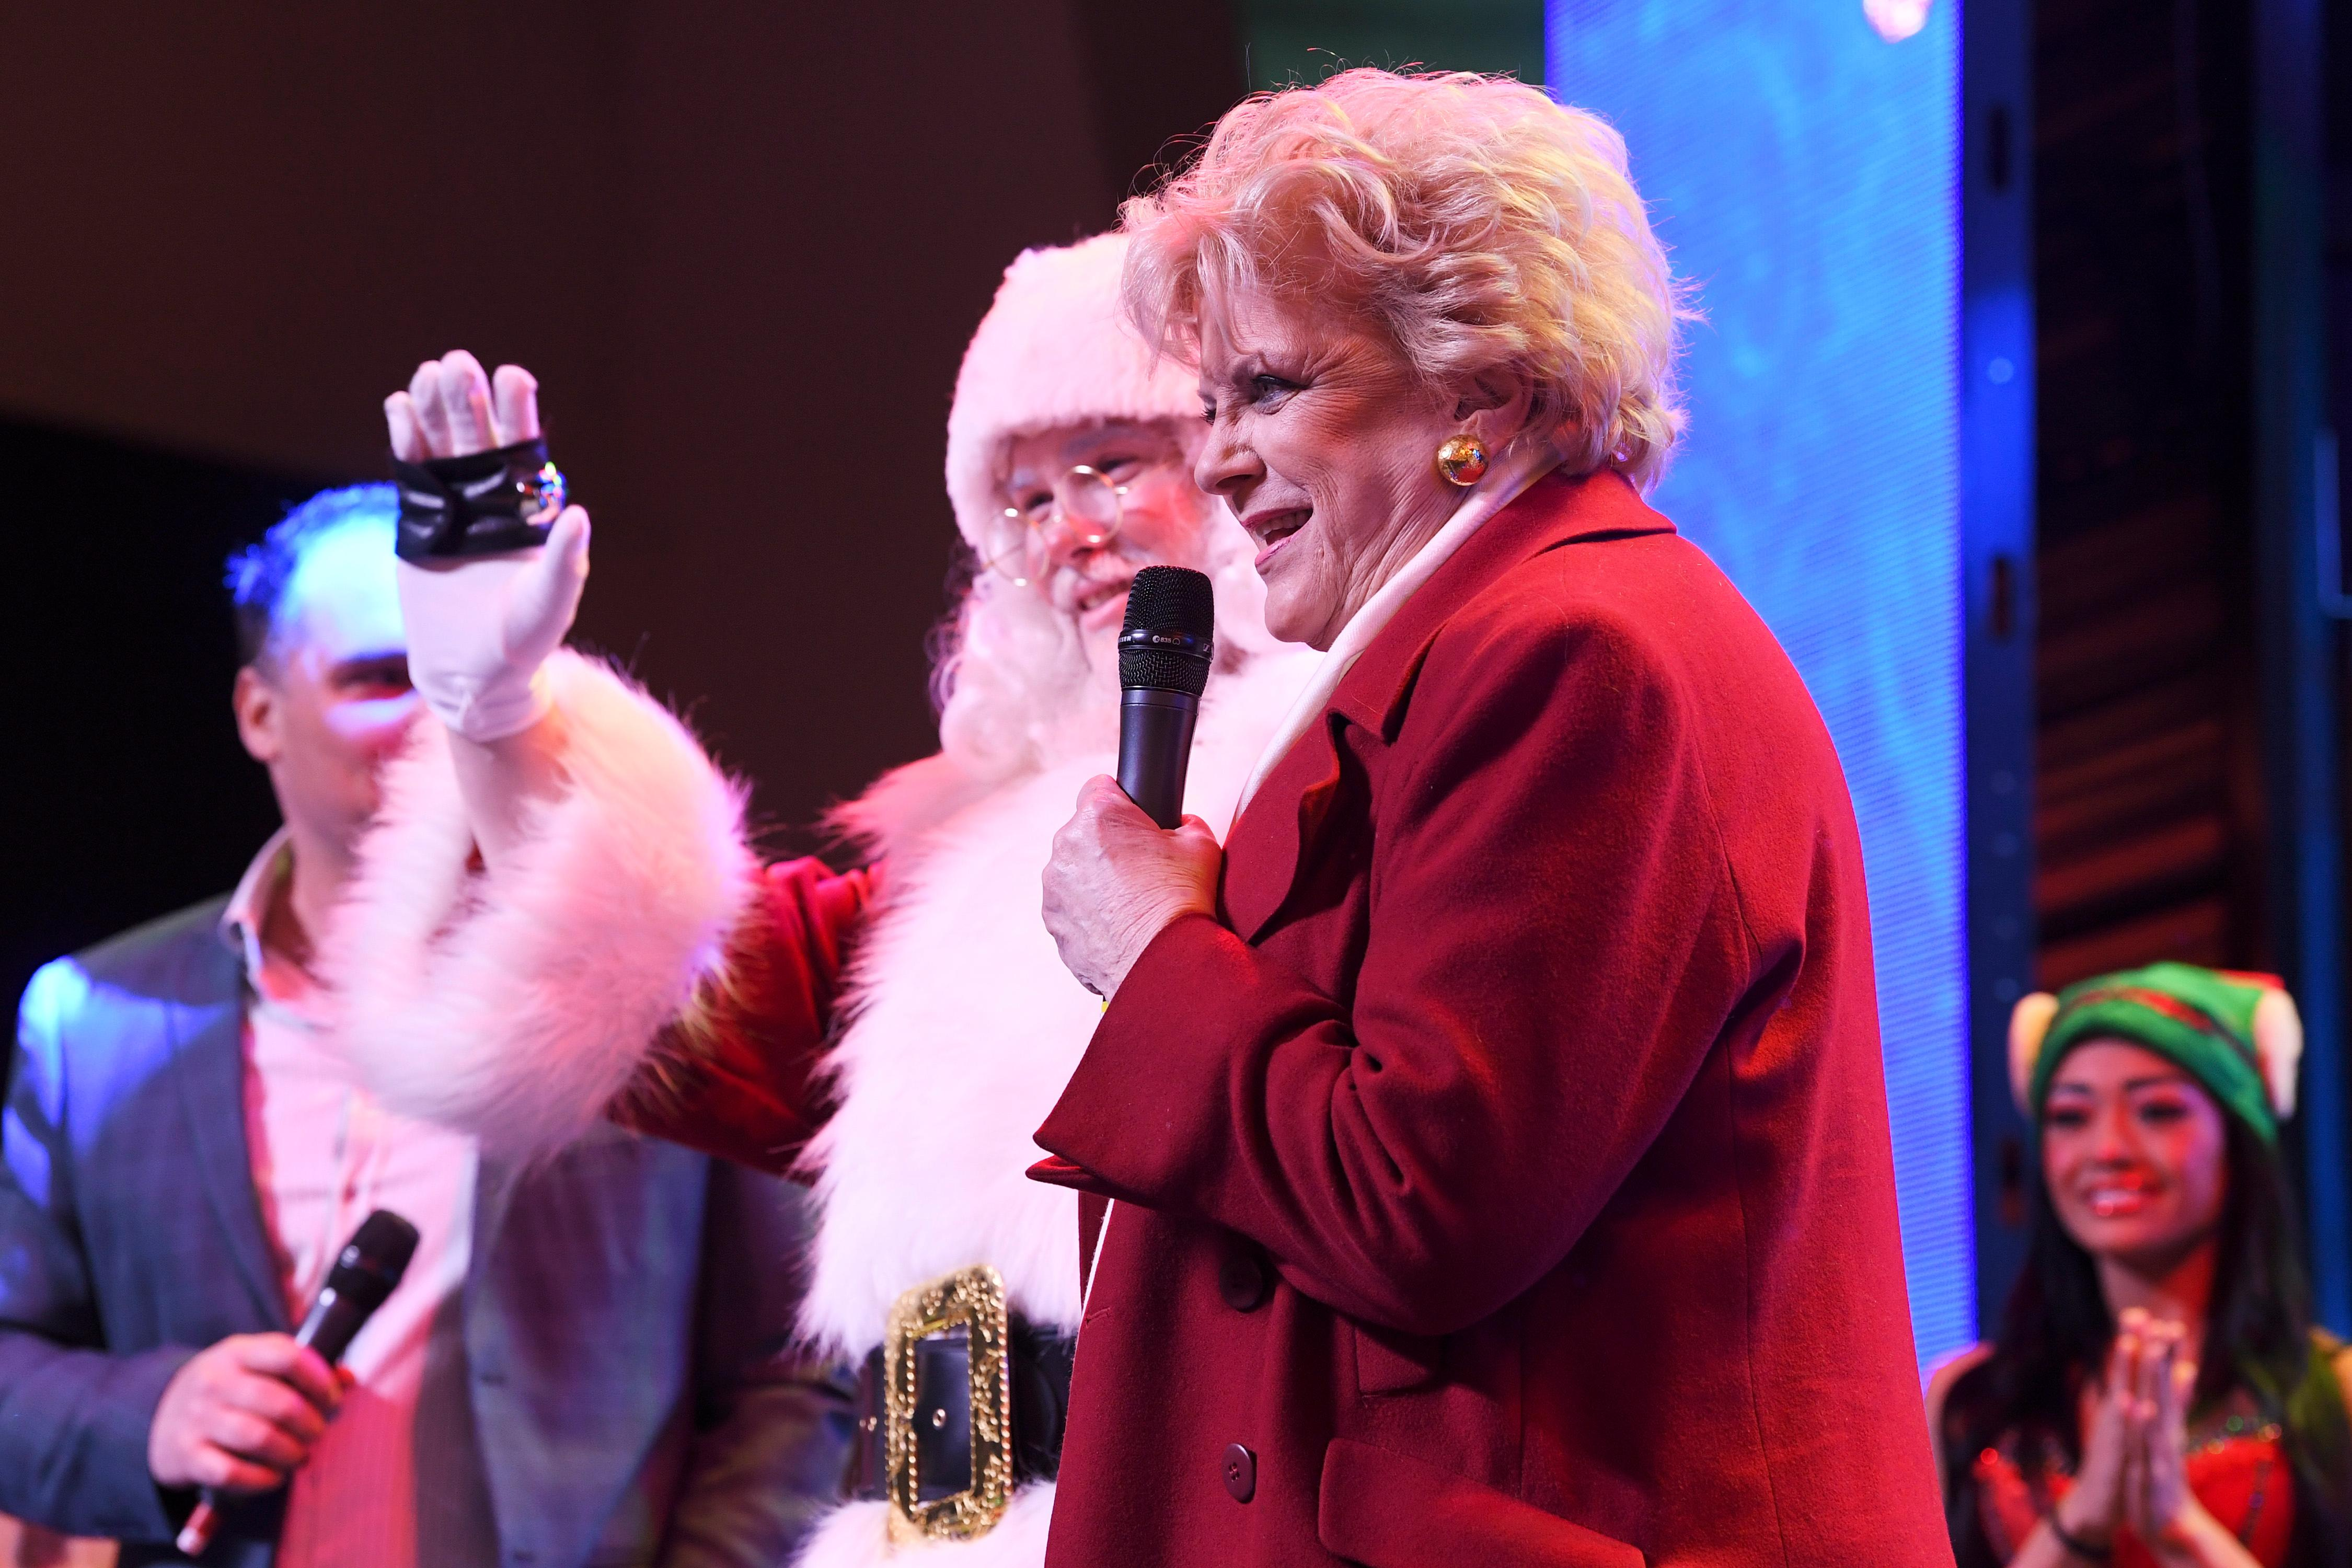 Las Vegas Mayor Carolyn Goodman is joined by a Santa during the annual lighting of a Christmas tree at the Fremont Street Experience Tuesday, December 4, 2018. CREDIT: Sam Morris/Las Vegas News Bureau